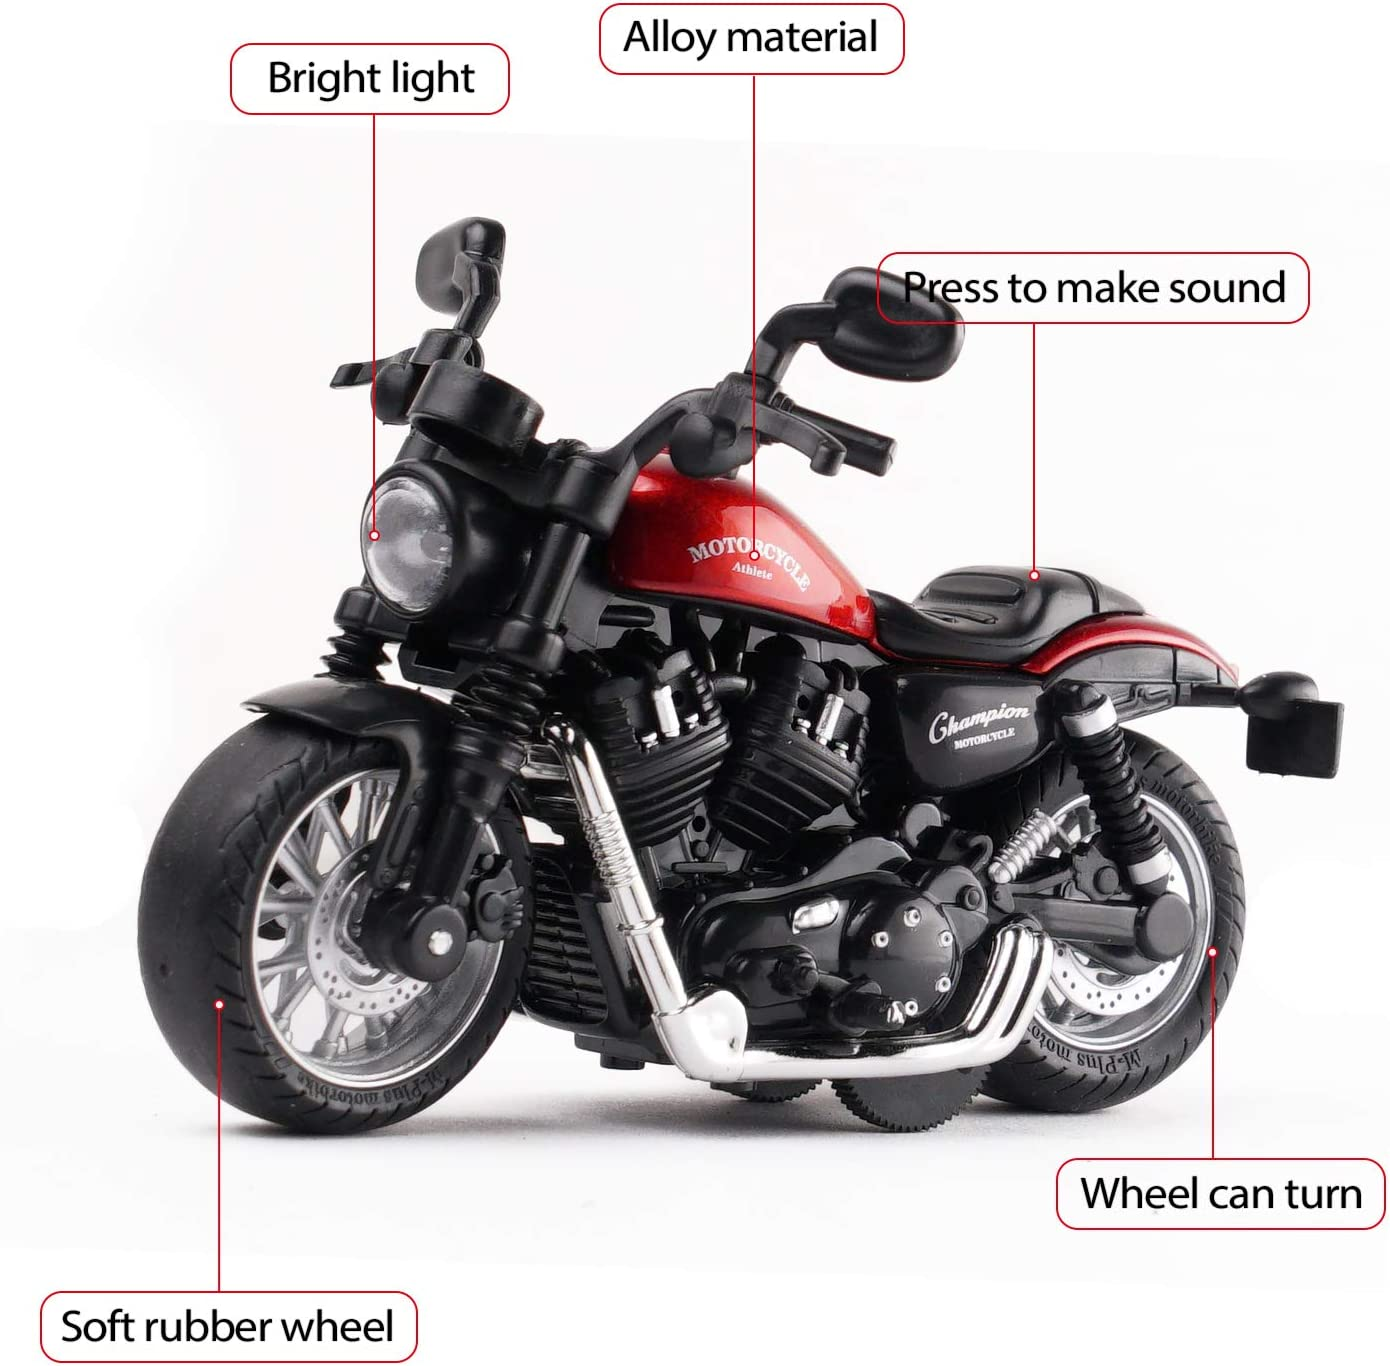 MING YING 66 Pull Back Toy Motorcycle Black Pull Back Toy Cars with Sound and Light Toy,Toy Motorcycles for Toddlers,Motorcycle Toys for Boys Age 2-9